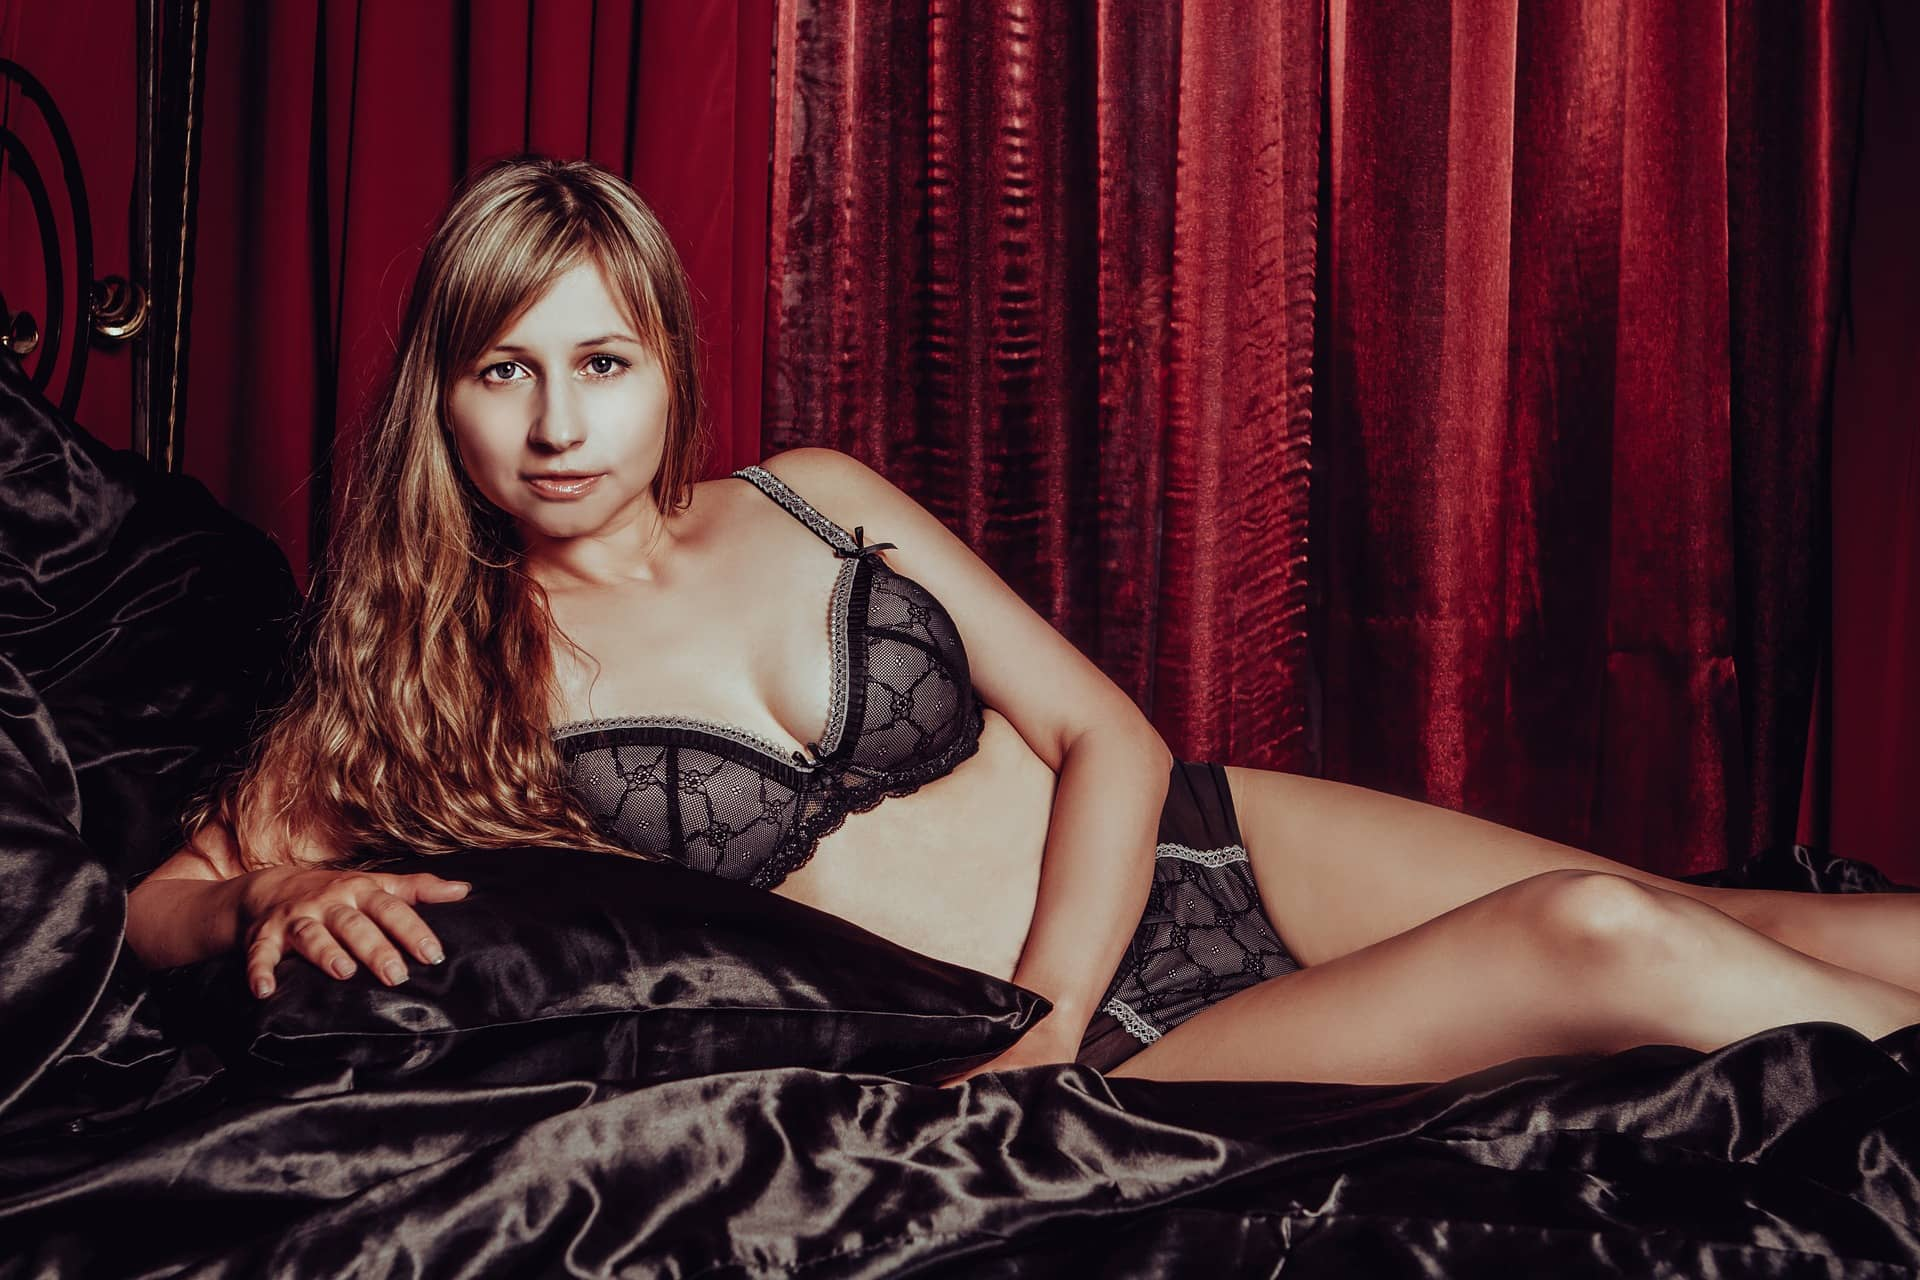 Beautiful russian woman Victoria Borodinova lying in a satin bed wearing black lace lingerie showing cleavage